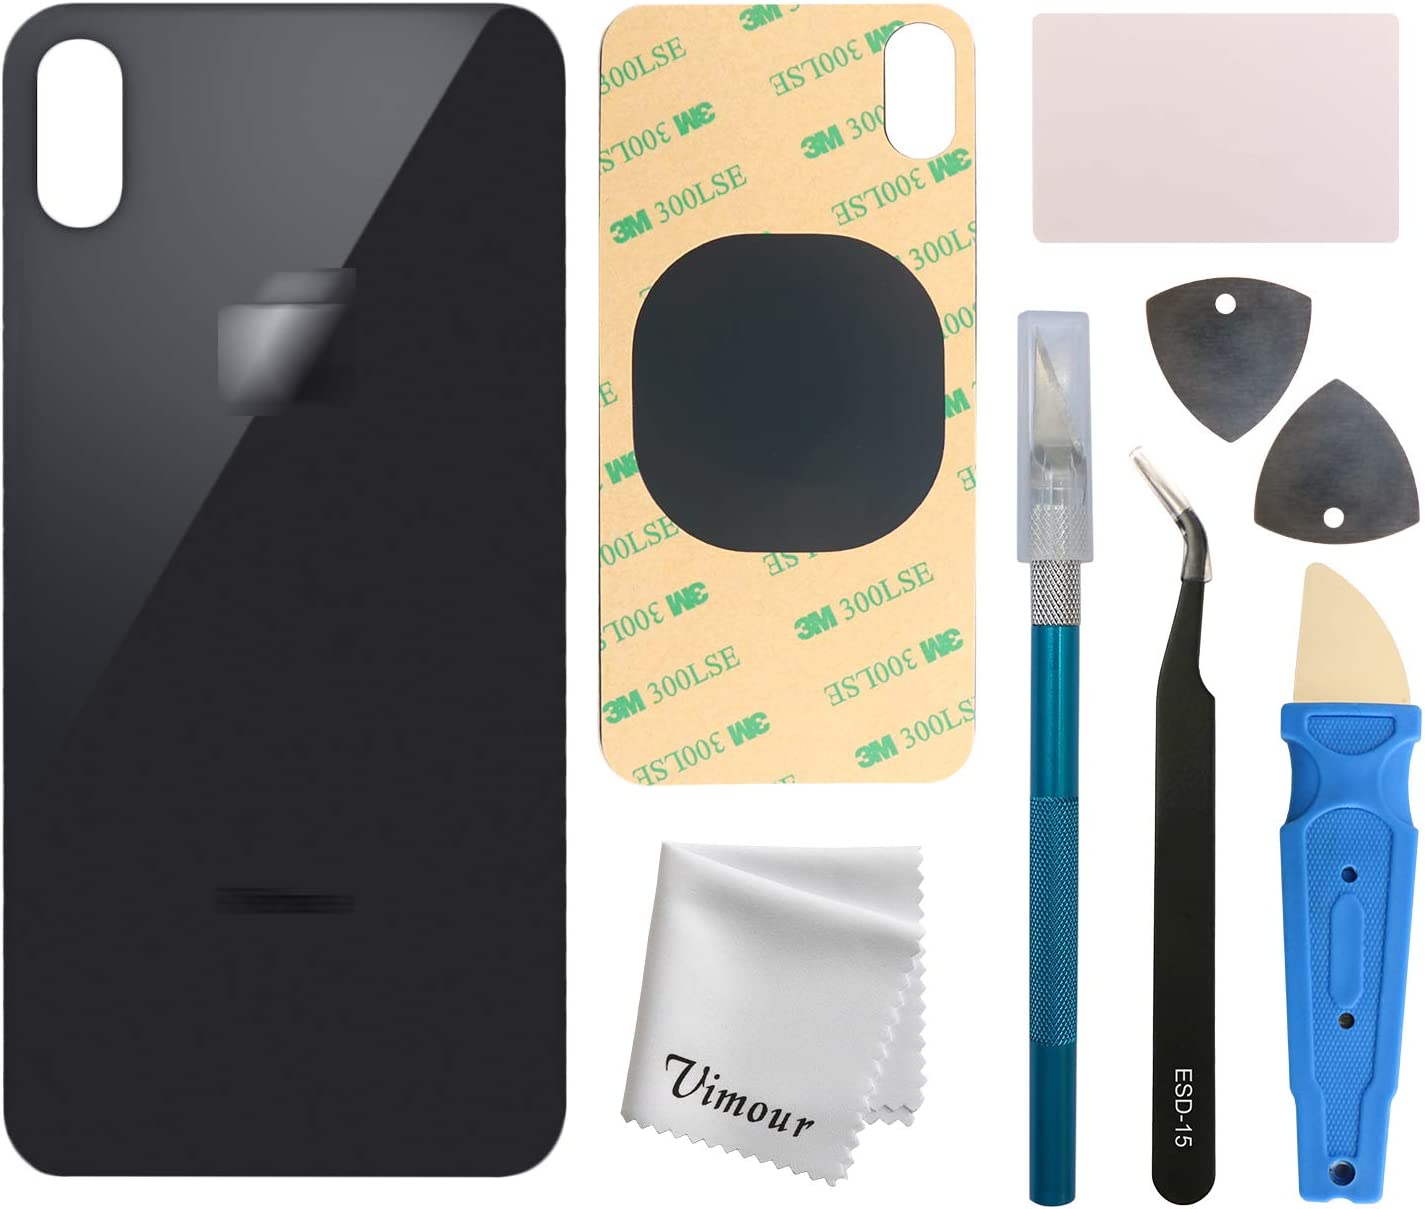 Vimour Back Glass Replacement for iPhone Xs Max 6.5 Inches All Carriers with Pre-Installed Adhesive and Repair Tool Kits (Black)